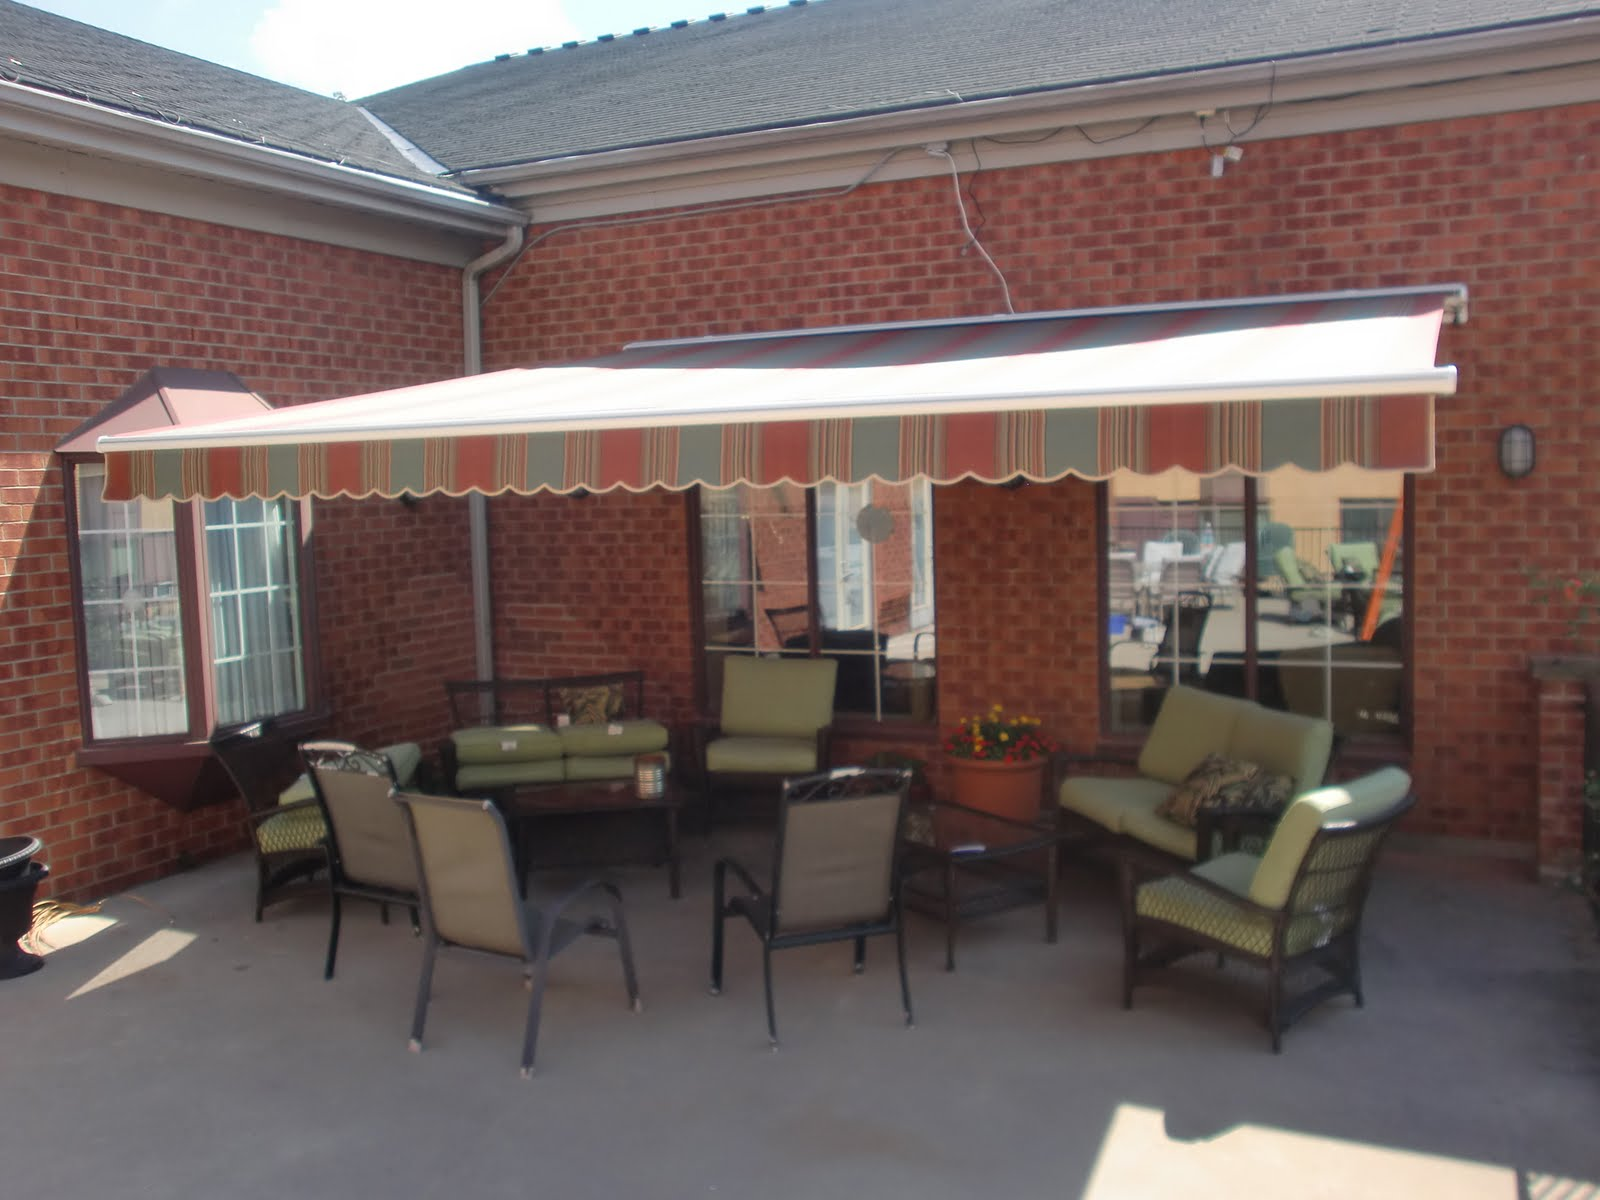 patio of canvas awning cloth fabric canopy ideas fresh